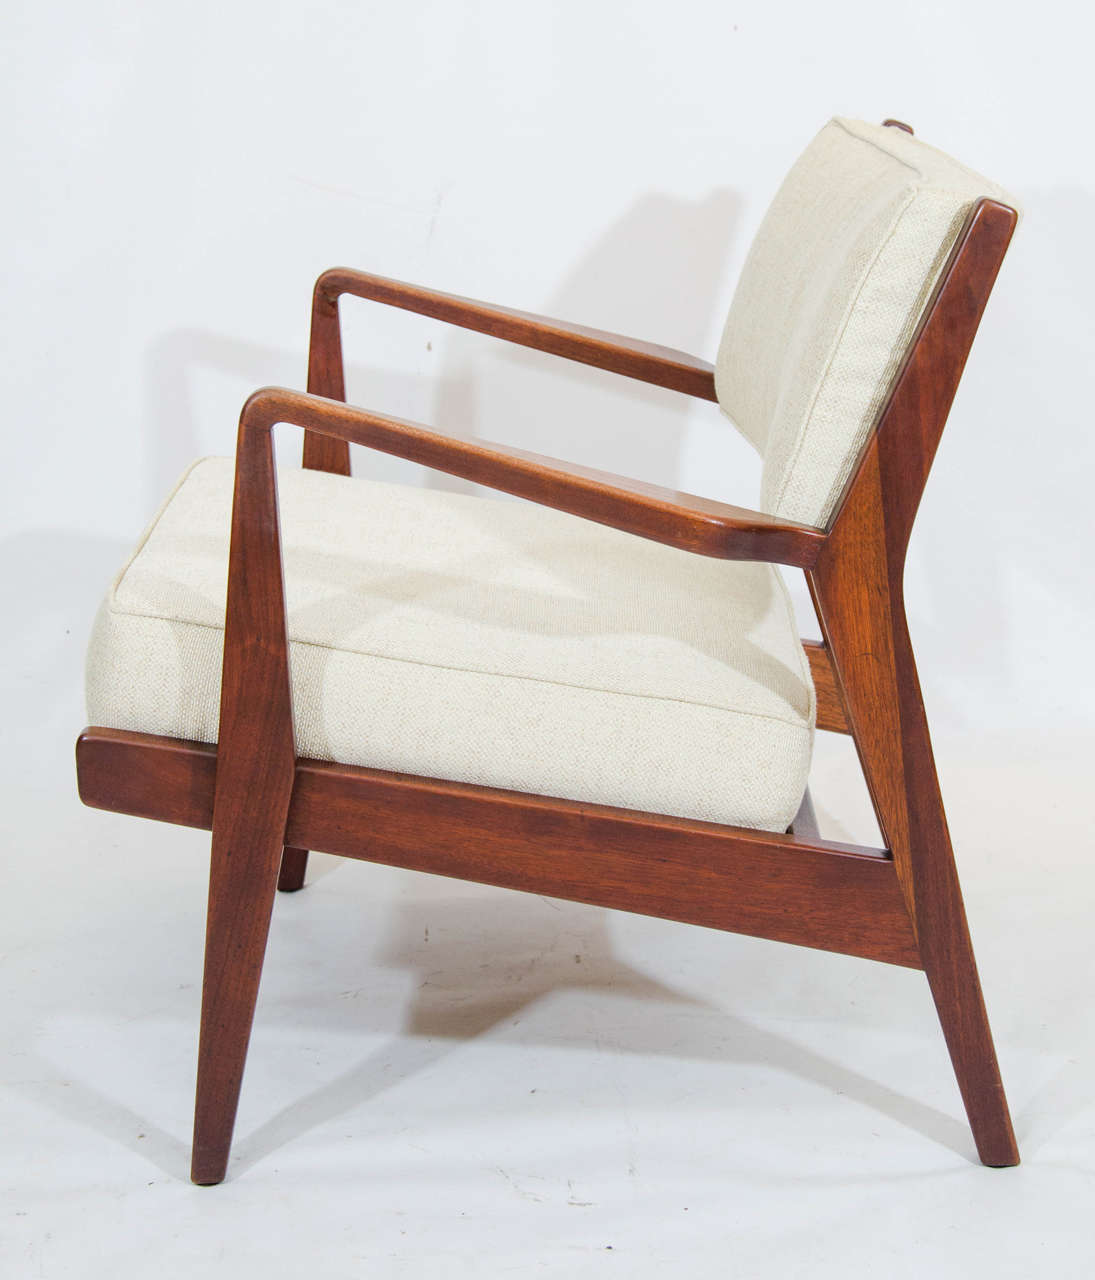 Charmant Mid 20th Century Jens Risom Lounge Chair And Ottoman For Sale